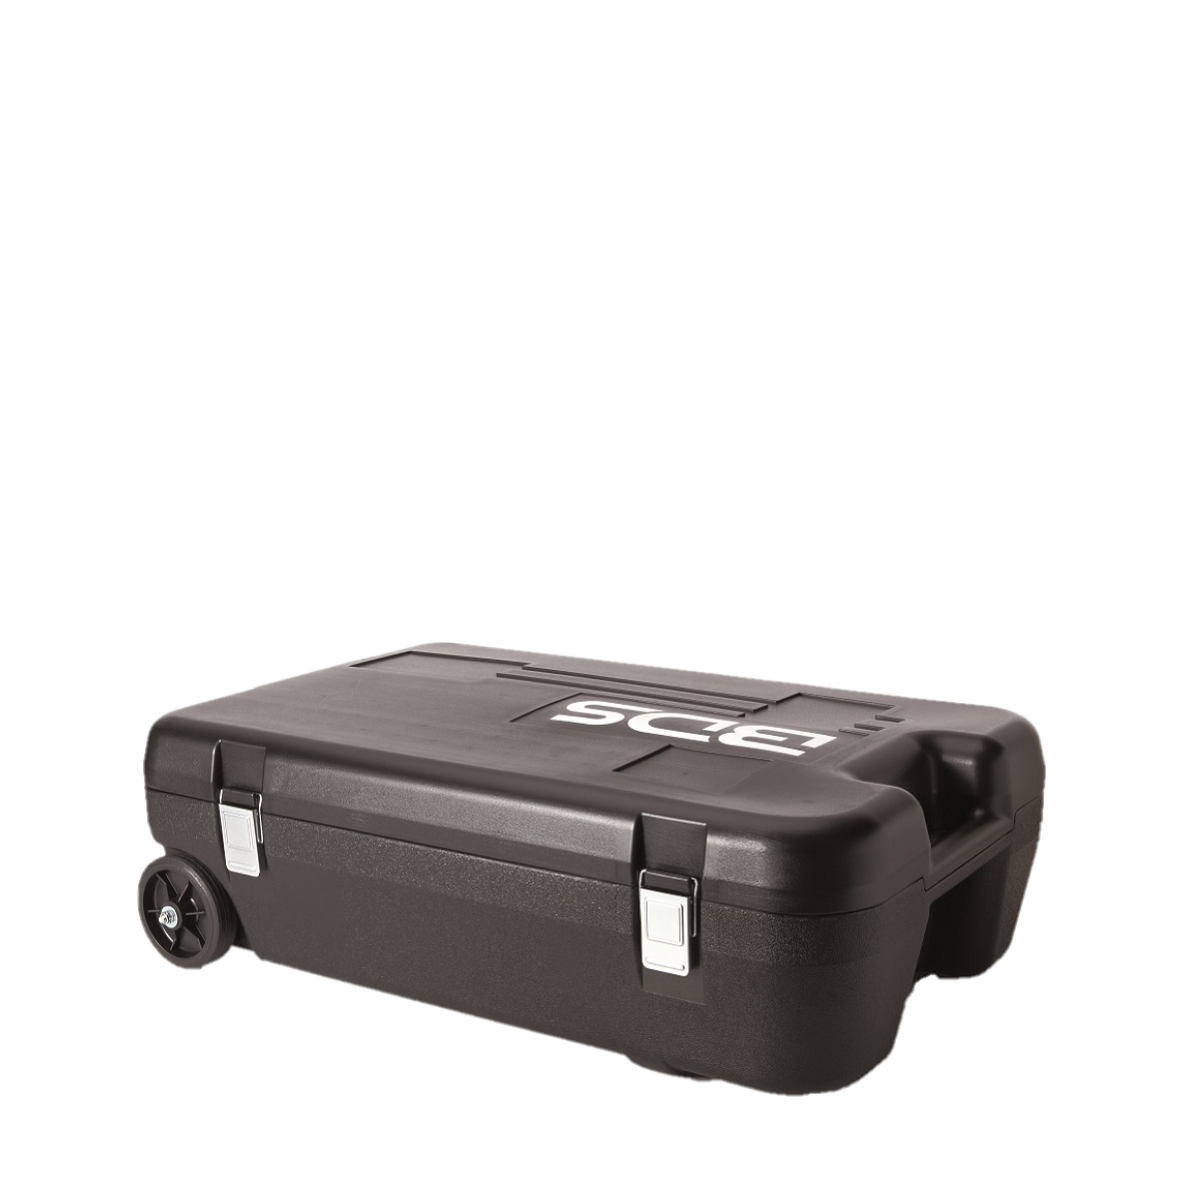 Carry case on wheels for MAB 825 & 845